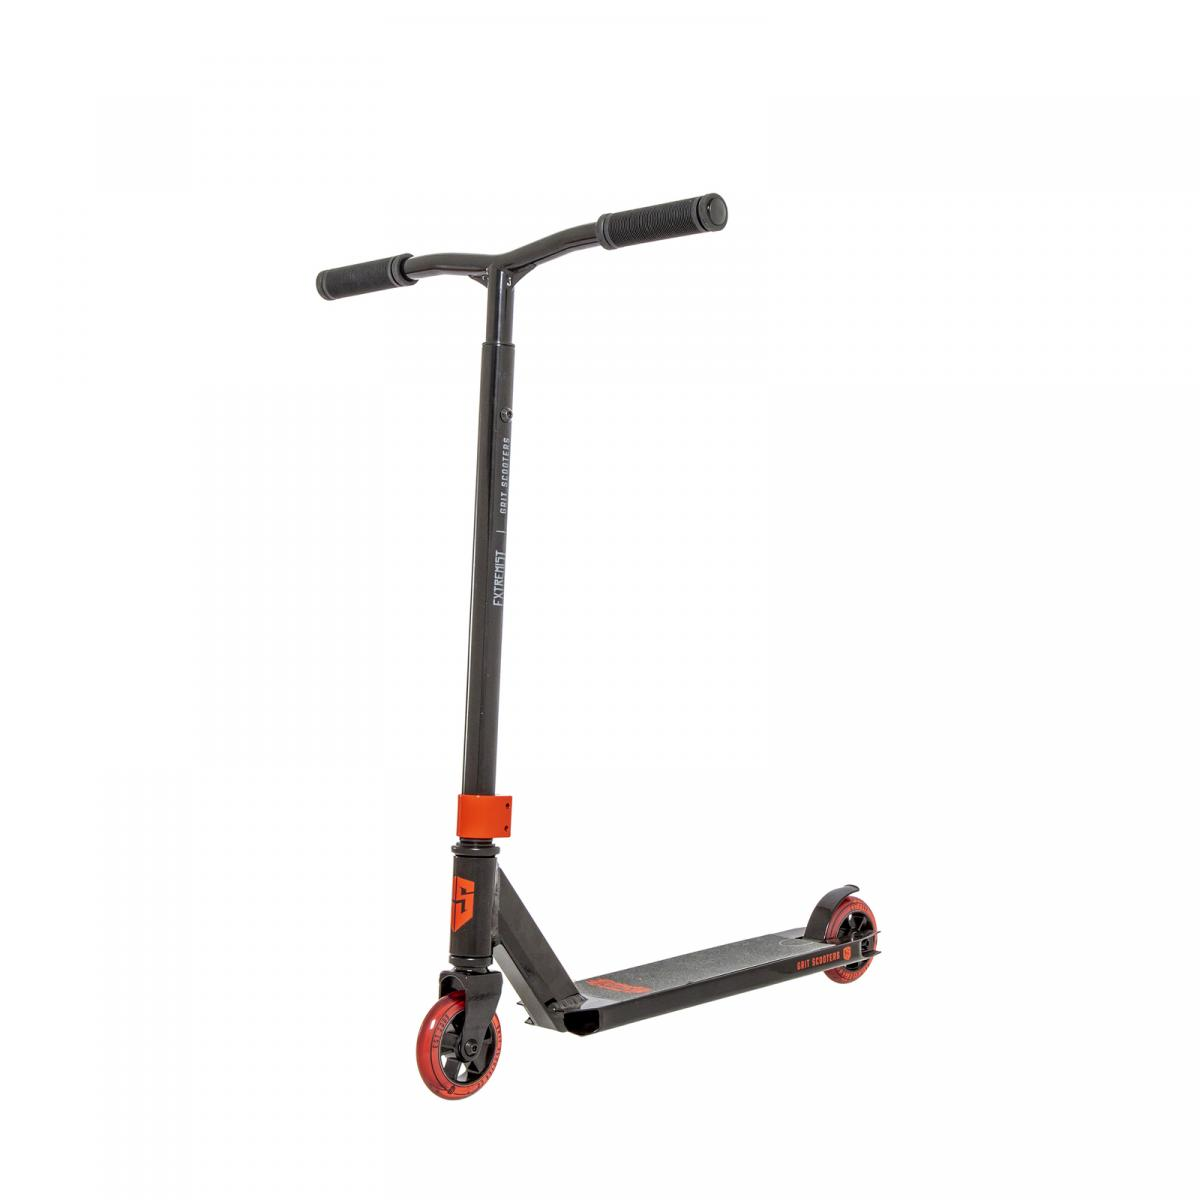 2020 Grit Extremist Scooter with 2 bar height positions.